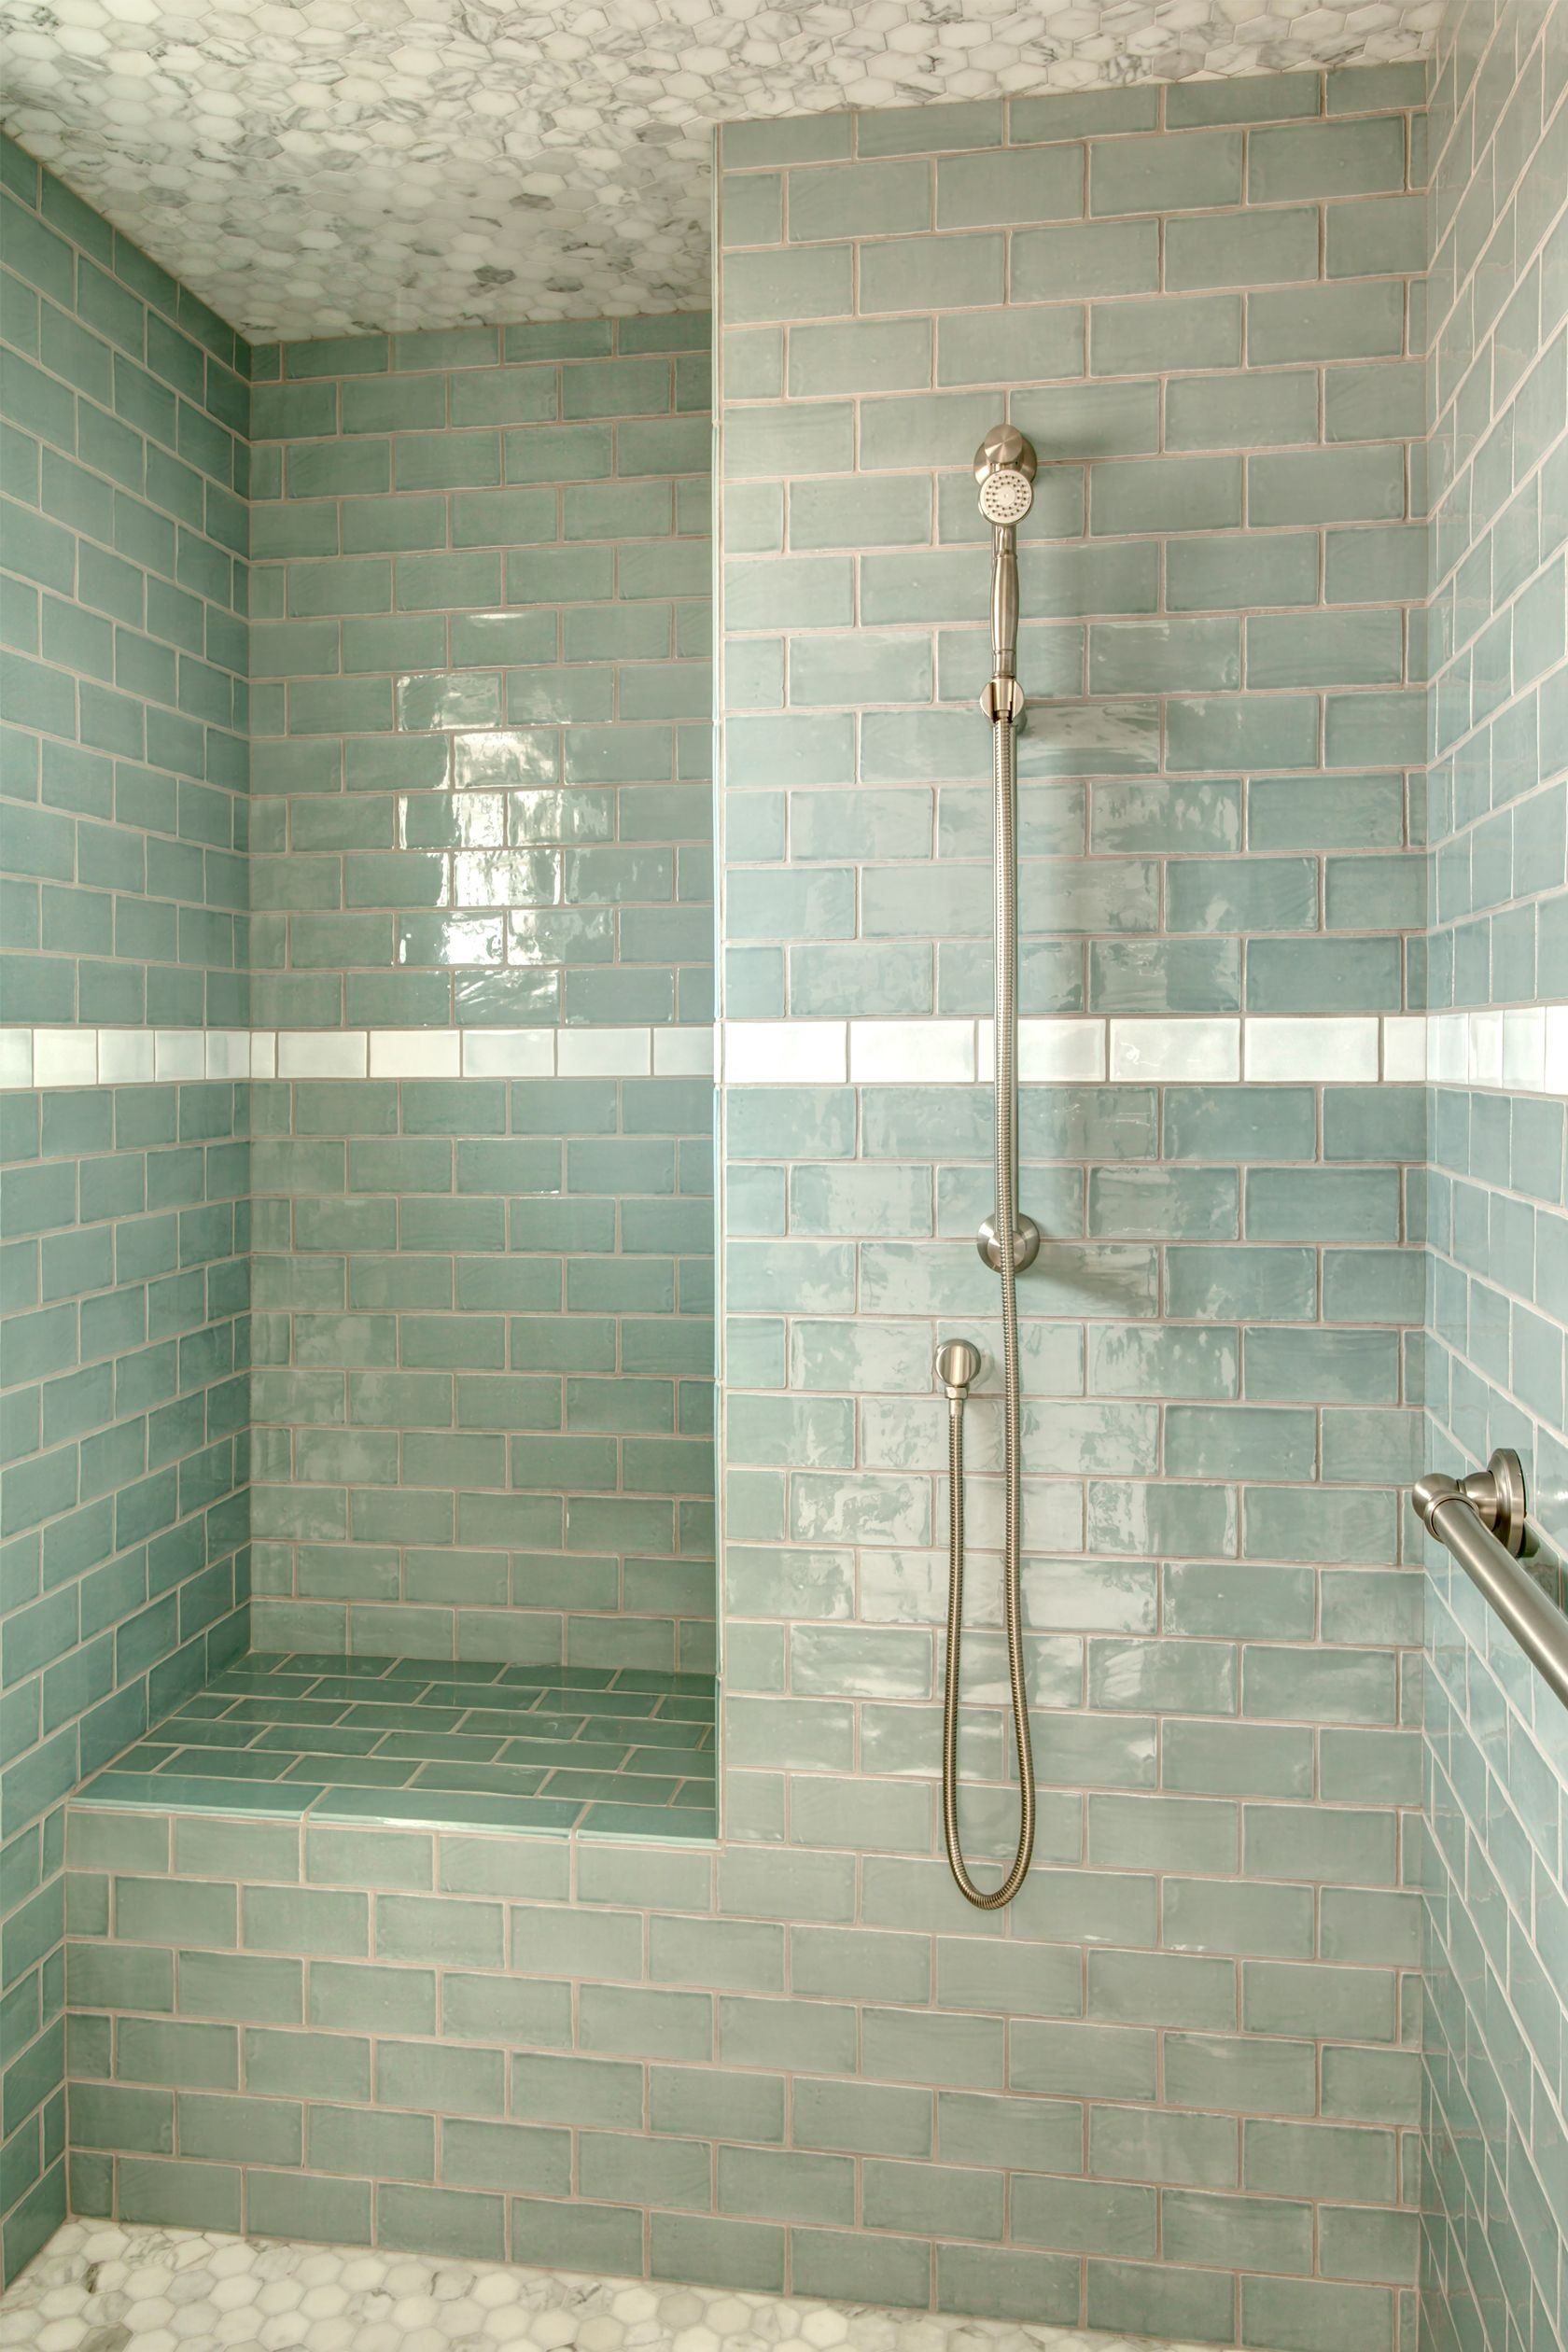 Sound Landing Gut And Remodel Of A 1960s Era Home Shower Ceiling Tile Colorful Bathroom Tile Shower Ceilings